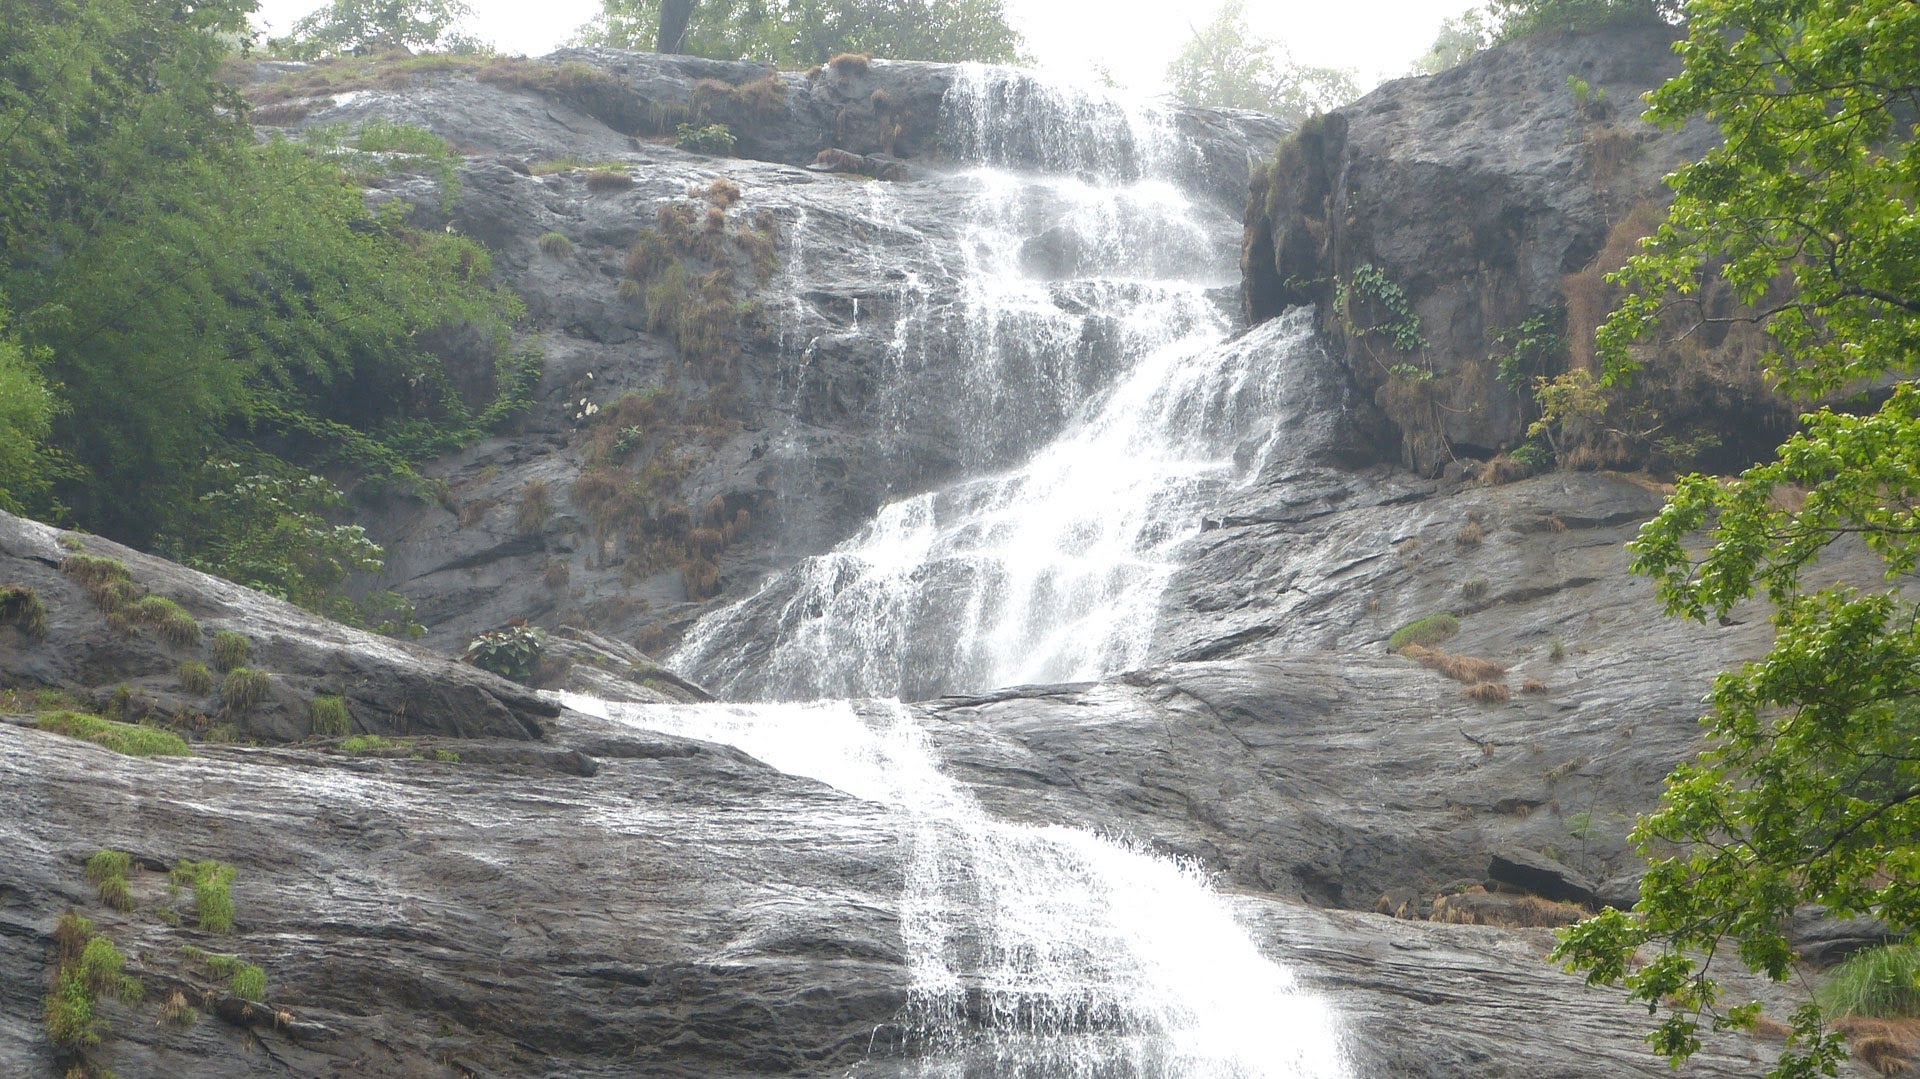 Cheeyappara and Valara waterfalls, Idukki Neriamangalam and Adimali around 10 km on the Kochi - Madurai Highway Idukki